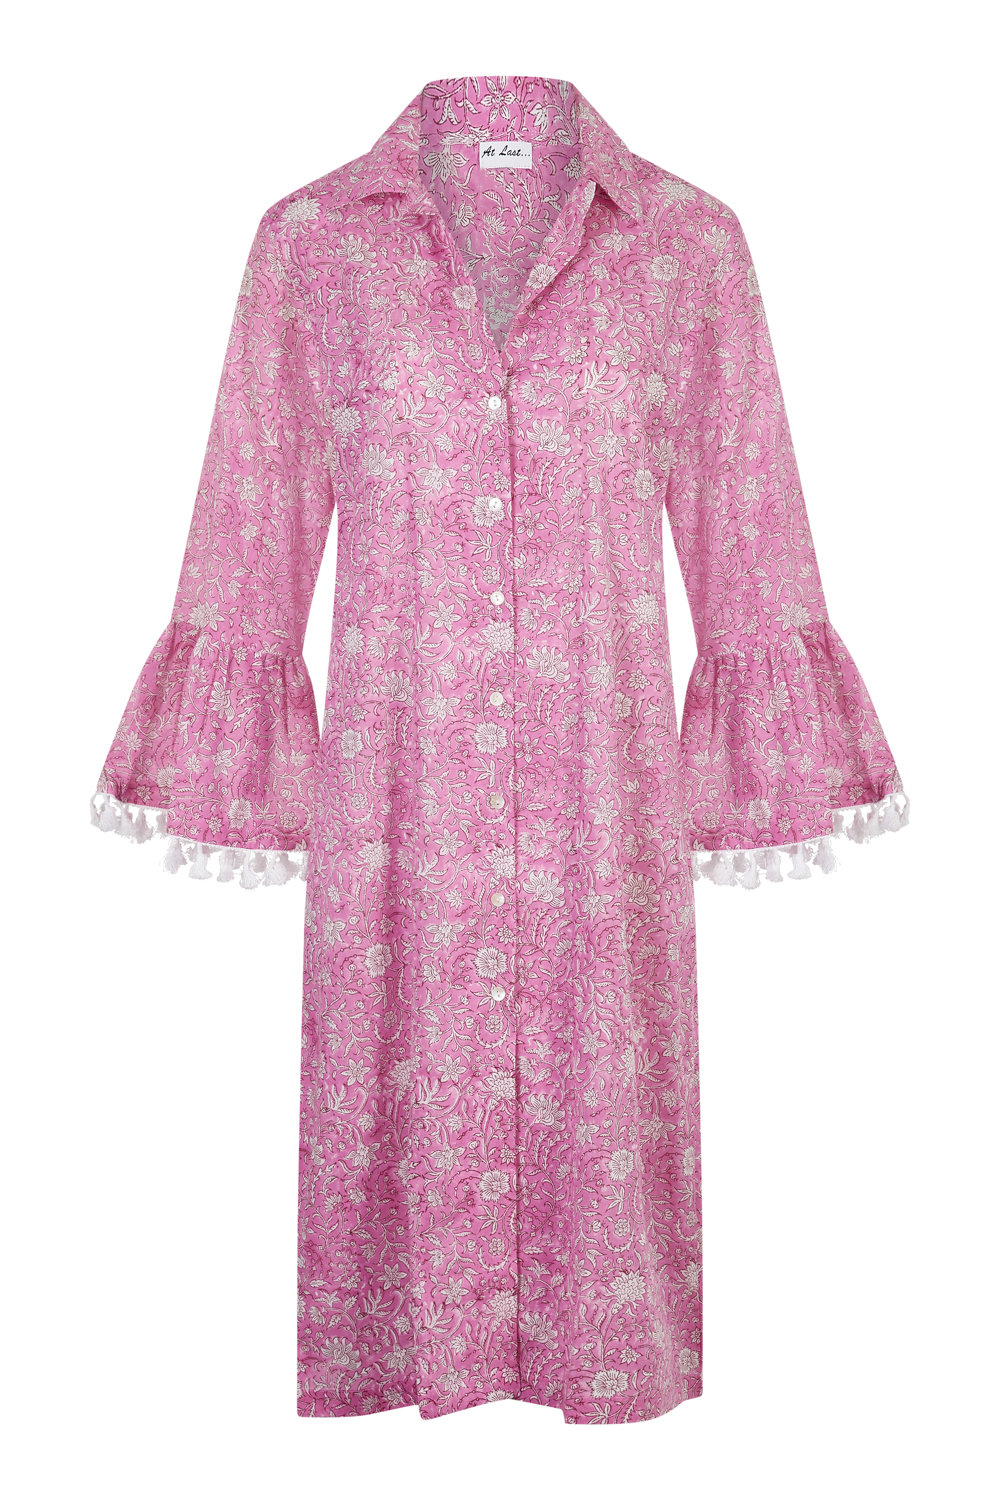 At Last Maxi Coat - Bubblegum Pink